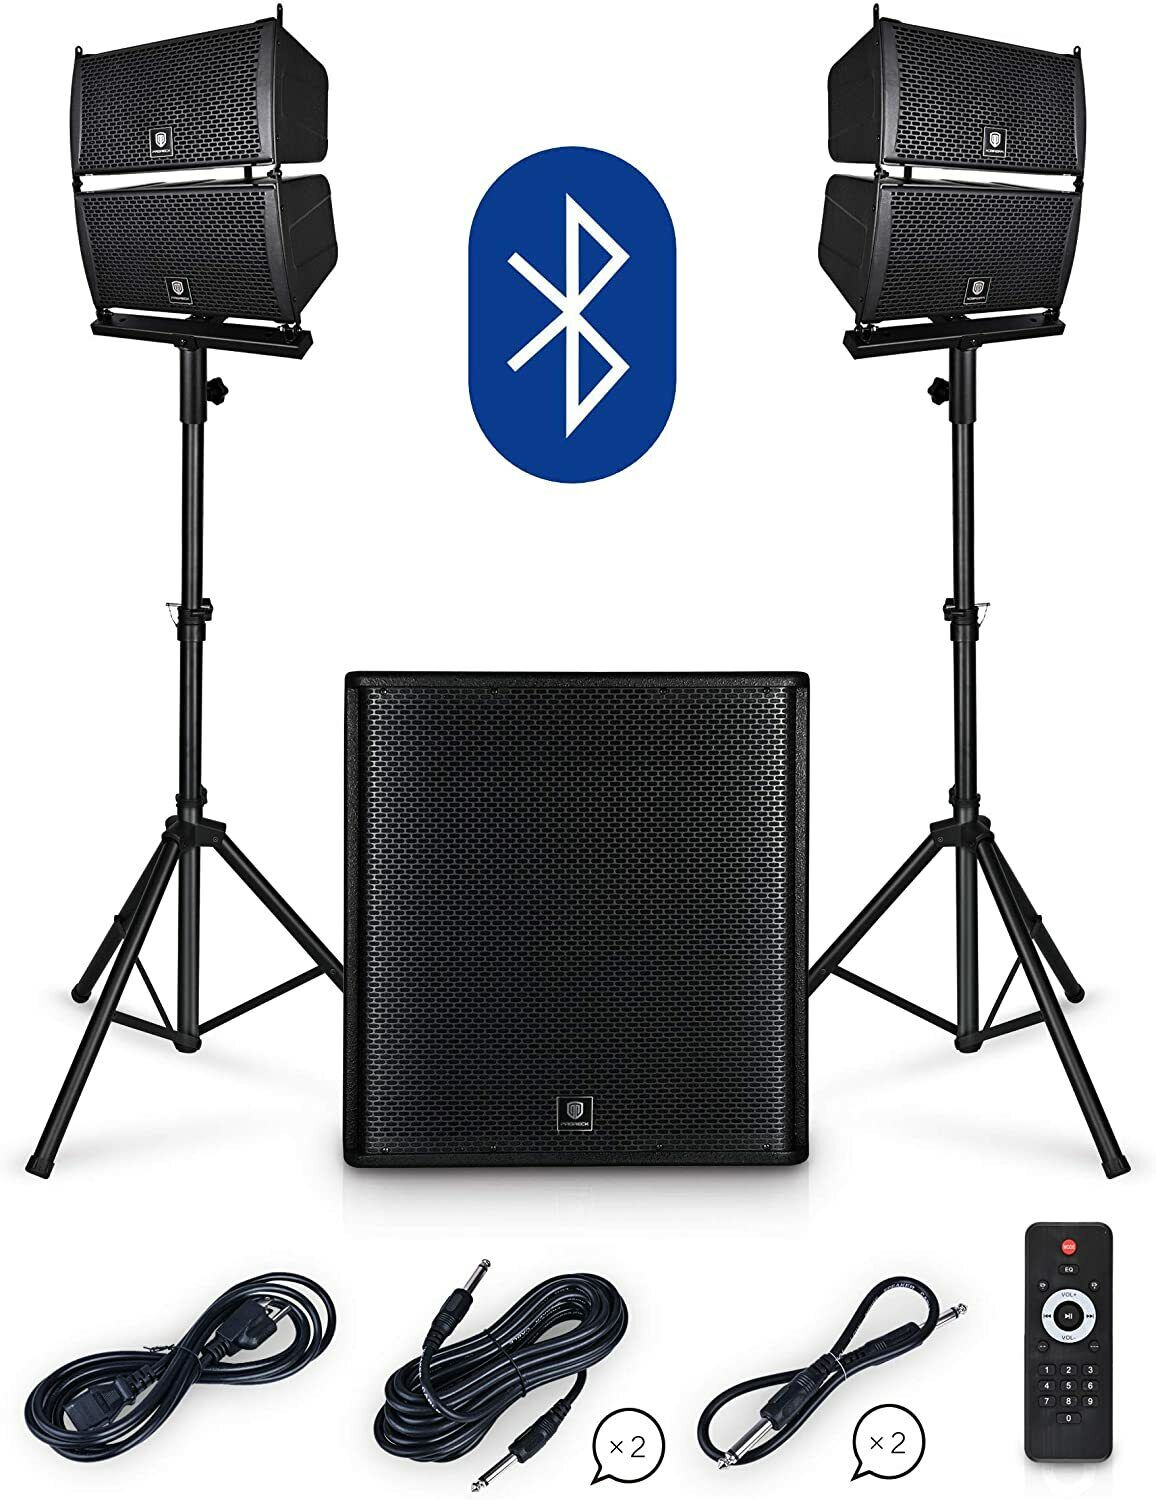 PRORECK Club 4000 18-inch 4000W P.M.P.O Stereo DJ/Powered PA Speaker System . Buy it now for 549.99